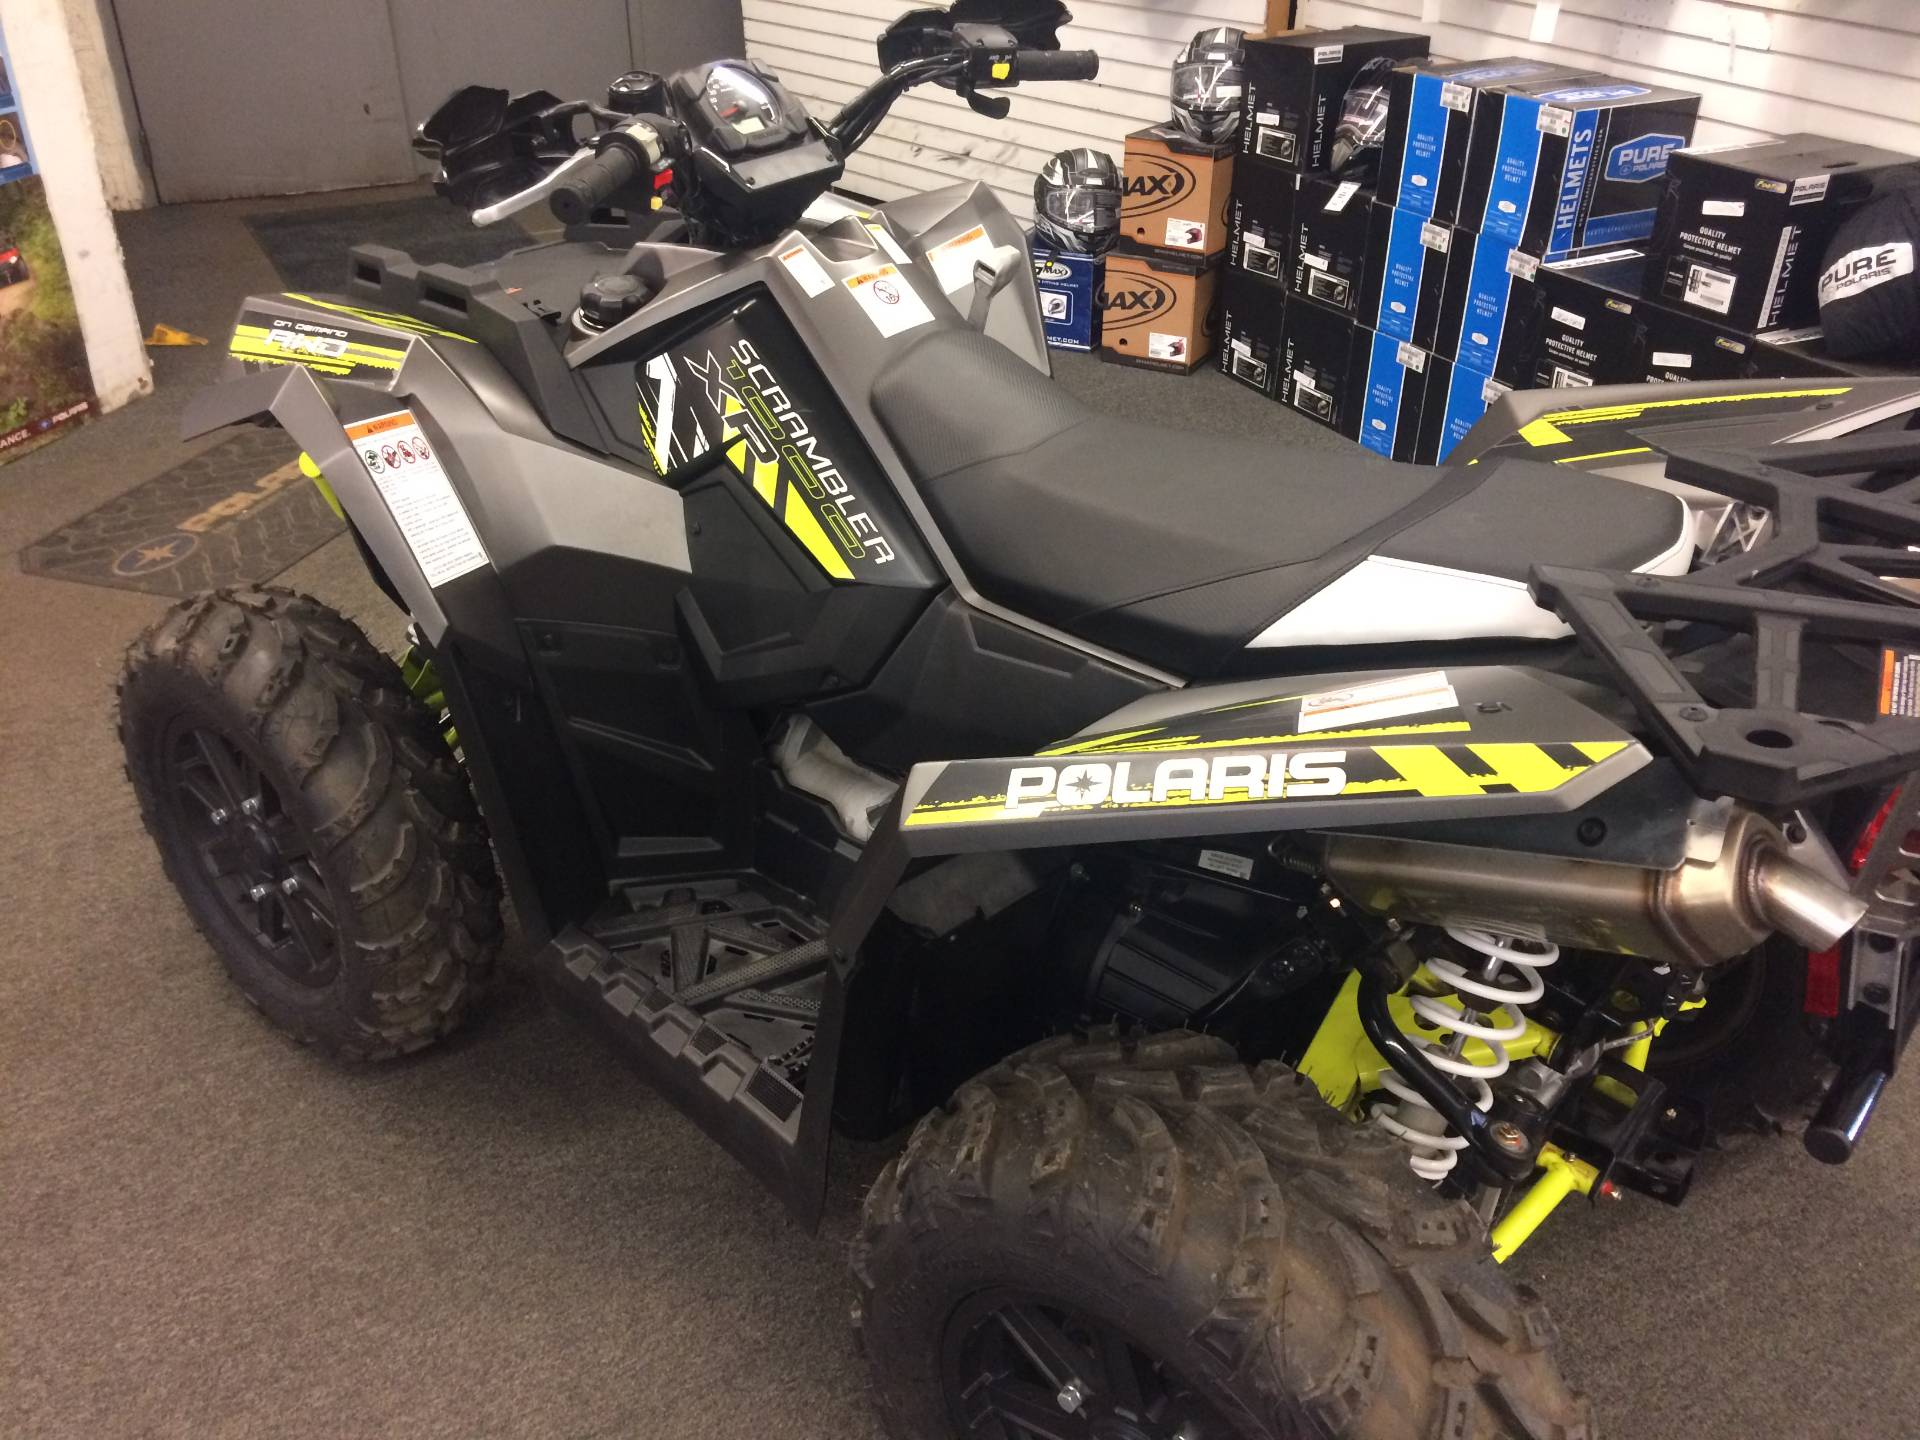 2016 Polaris Scrambler XP 1000 in Fridley, Minnesota